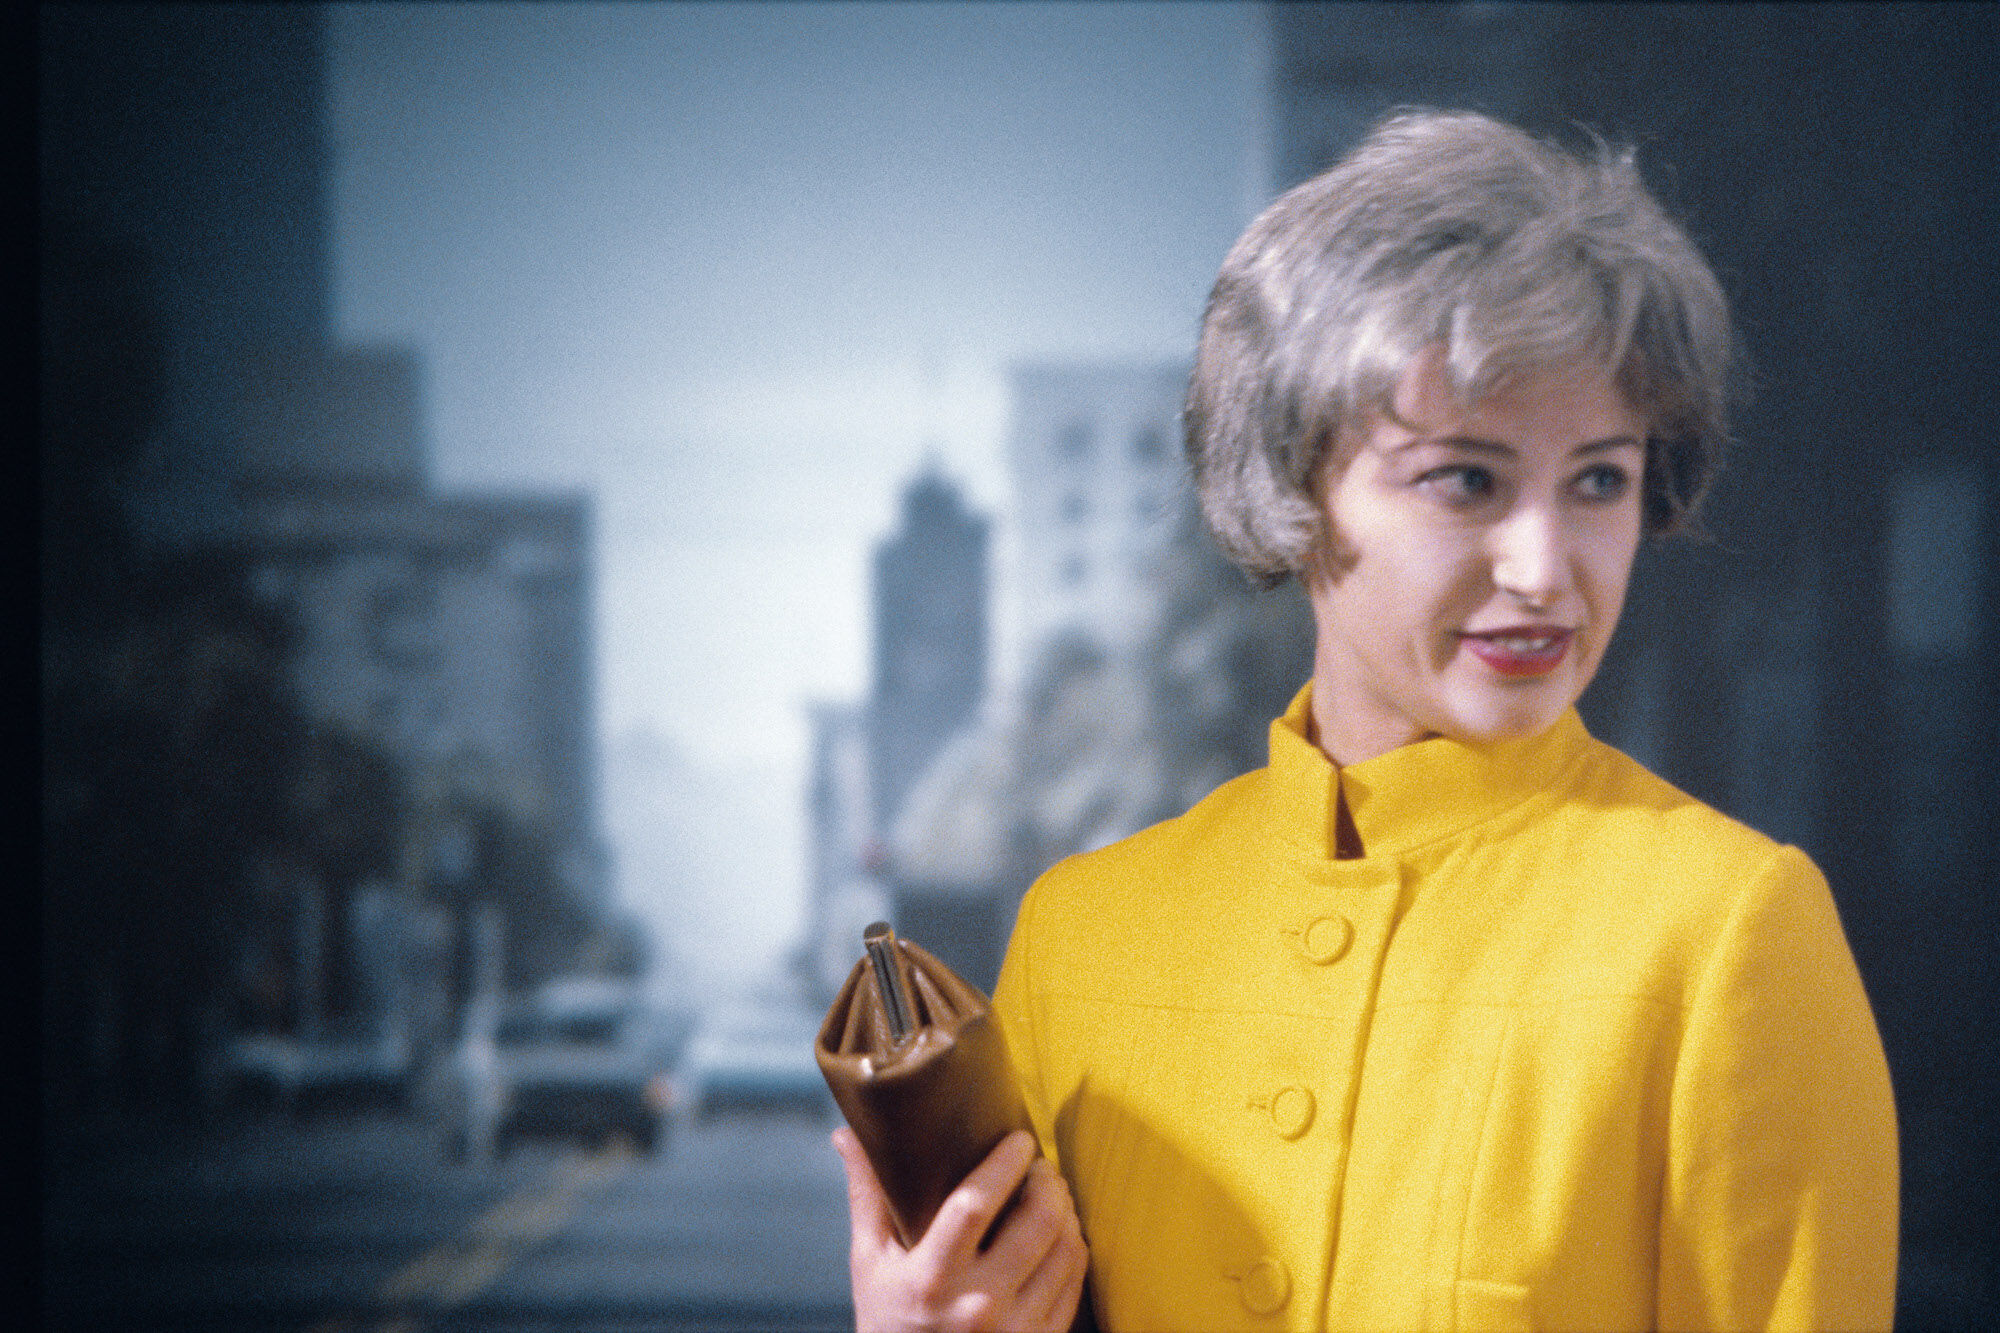 Cindy Sherman, Untitled #74, 1980. Courtesy of the artist and Metro Pictures, New York.